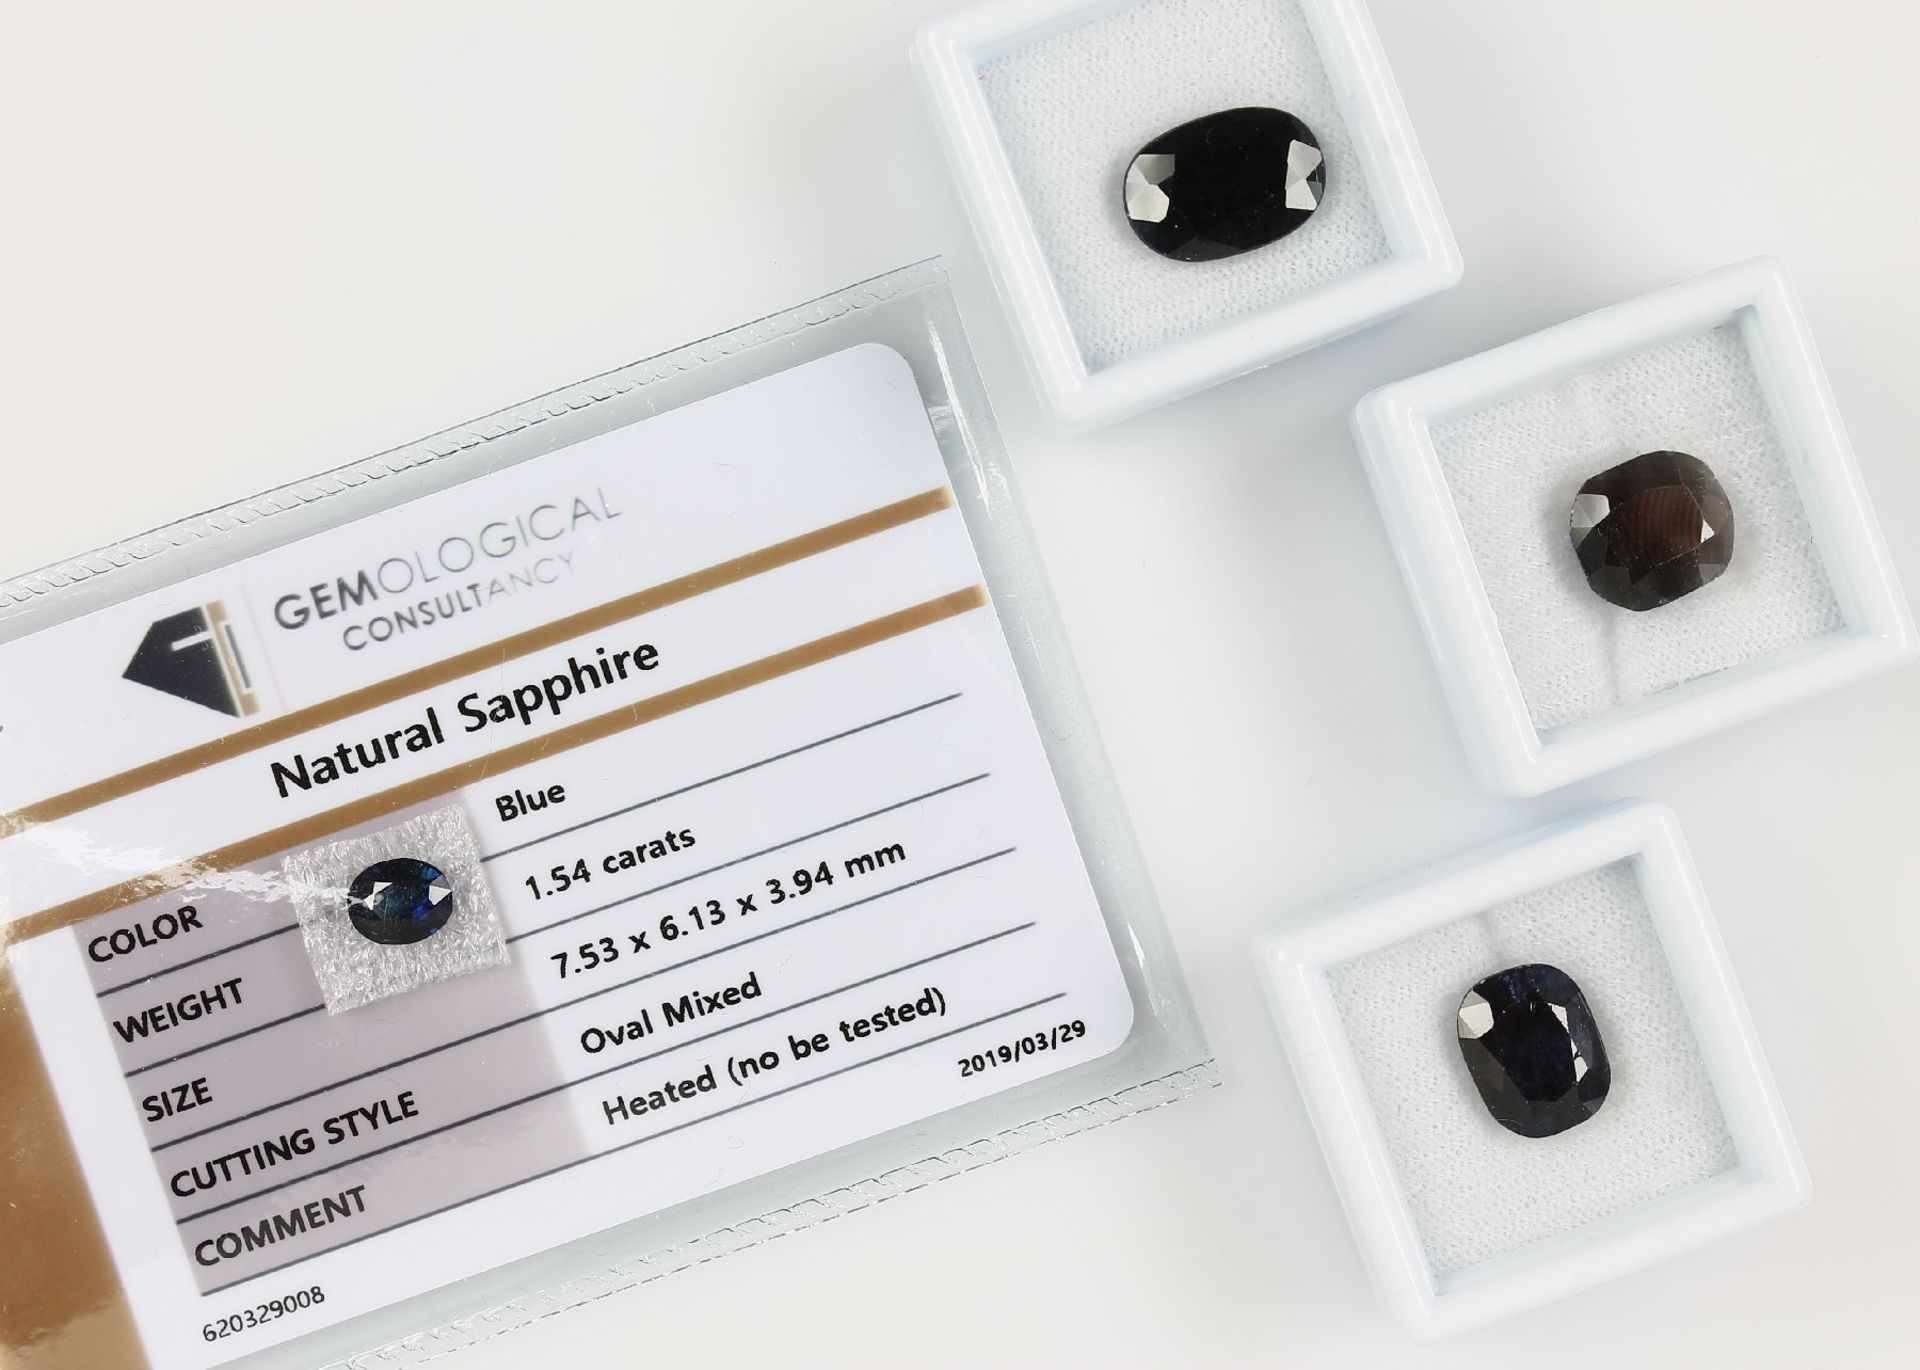 Konvolut 4 lose Saphire, best. aus: 1 x 7.535 ct, oval facett., 9.89 x 14.17 x 5.37 mm, Hitzebeh.,